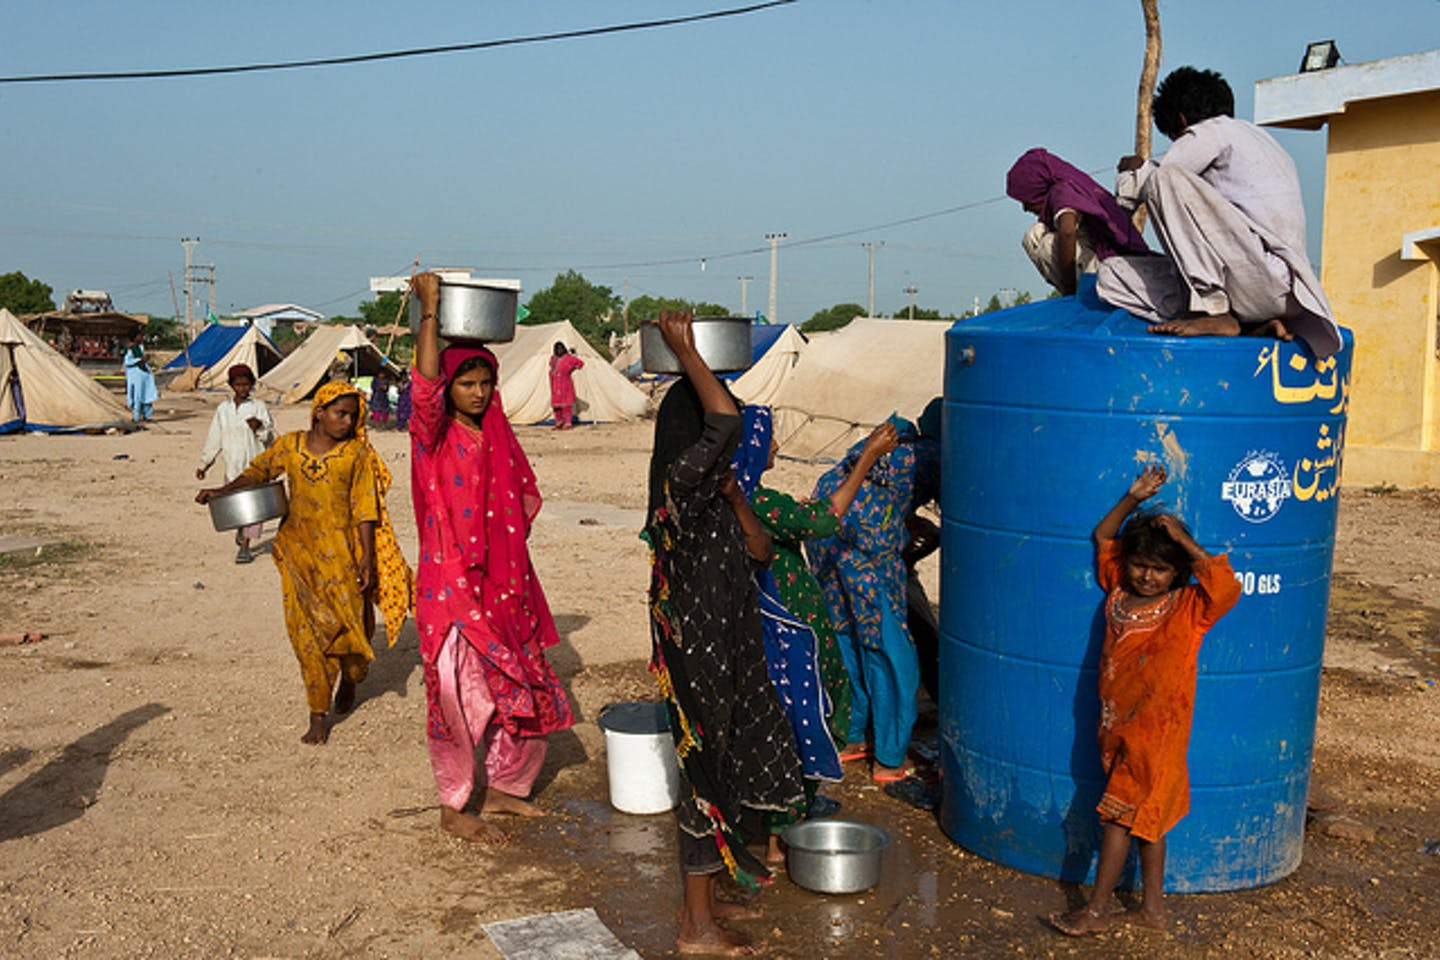 Women and children displaced by floods in Pakistan queue for water.